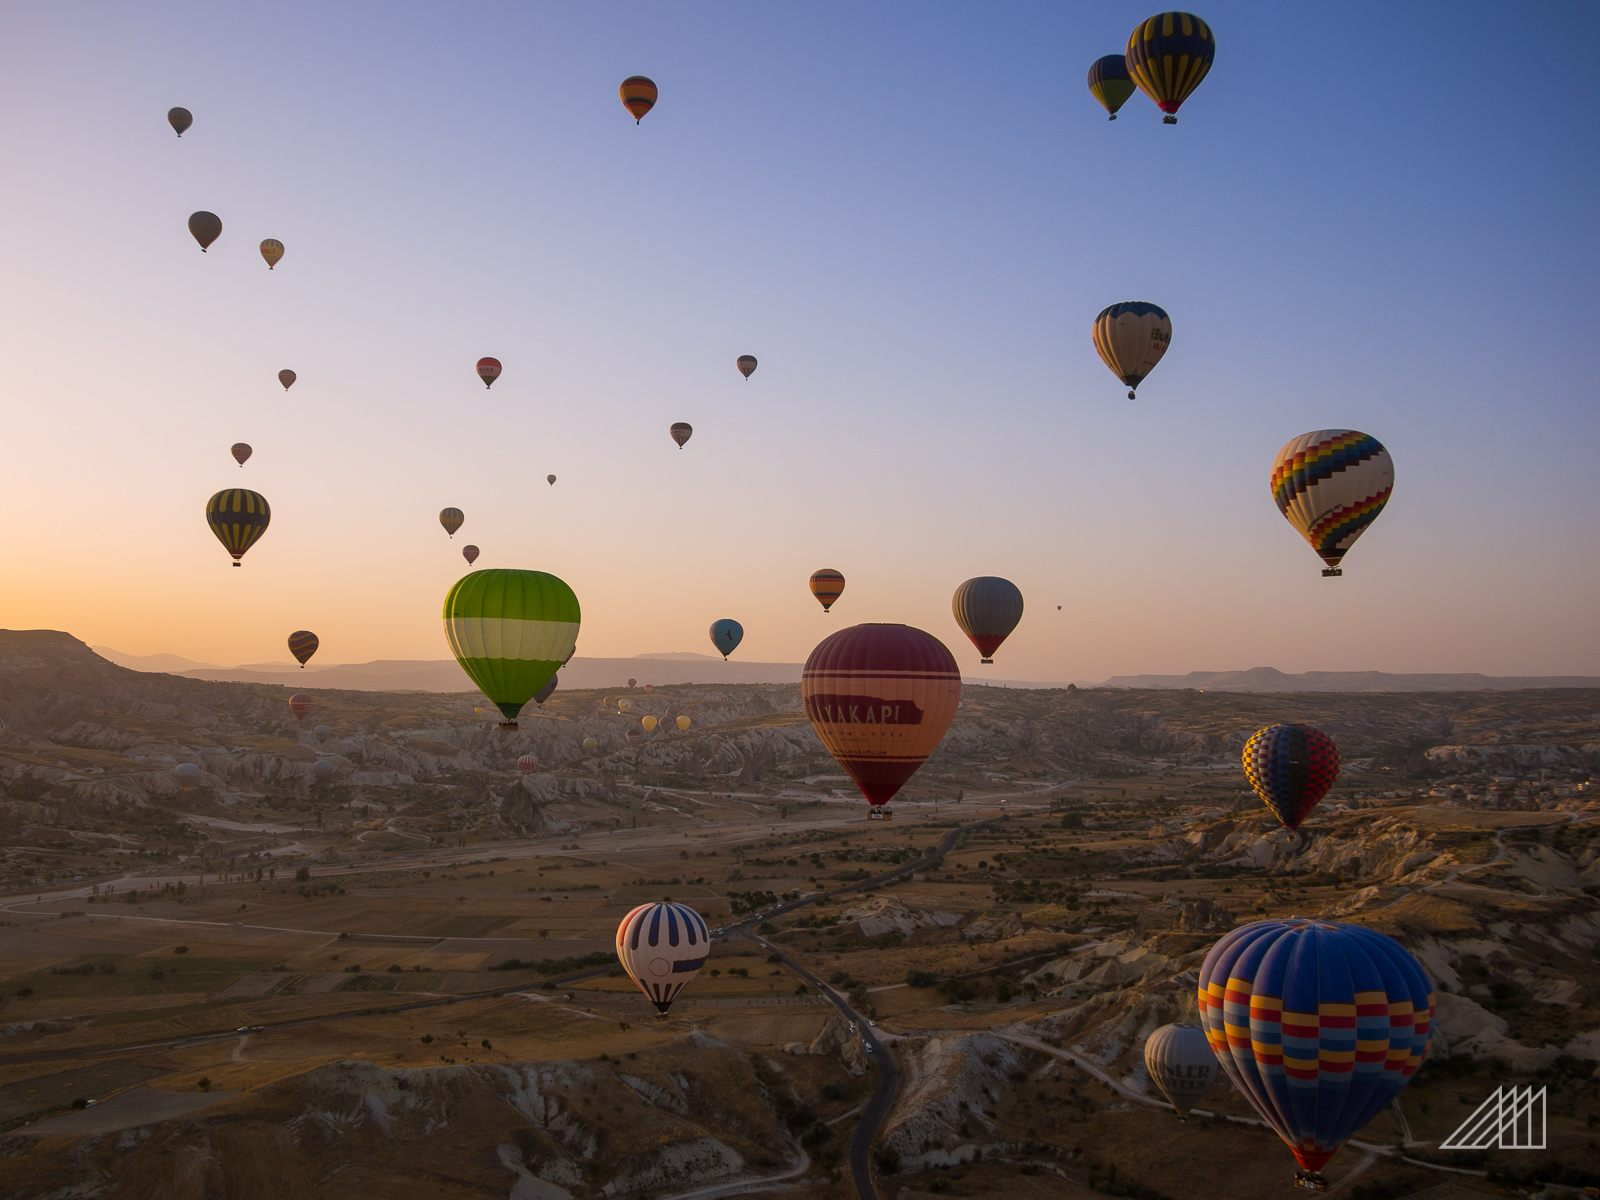 cappadocia hot air balloons backpacking turkey